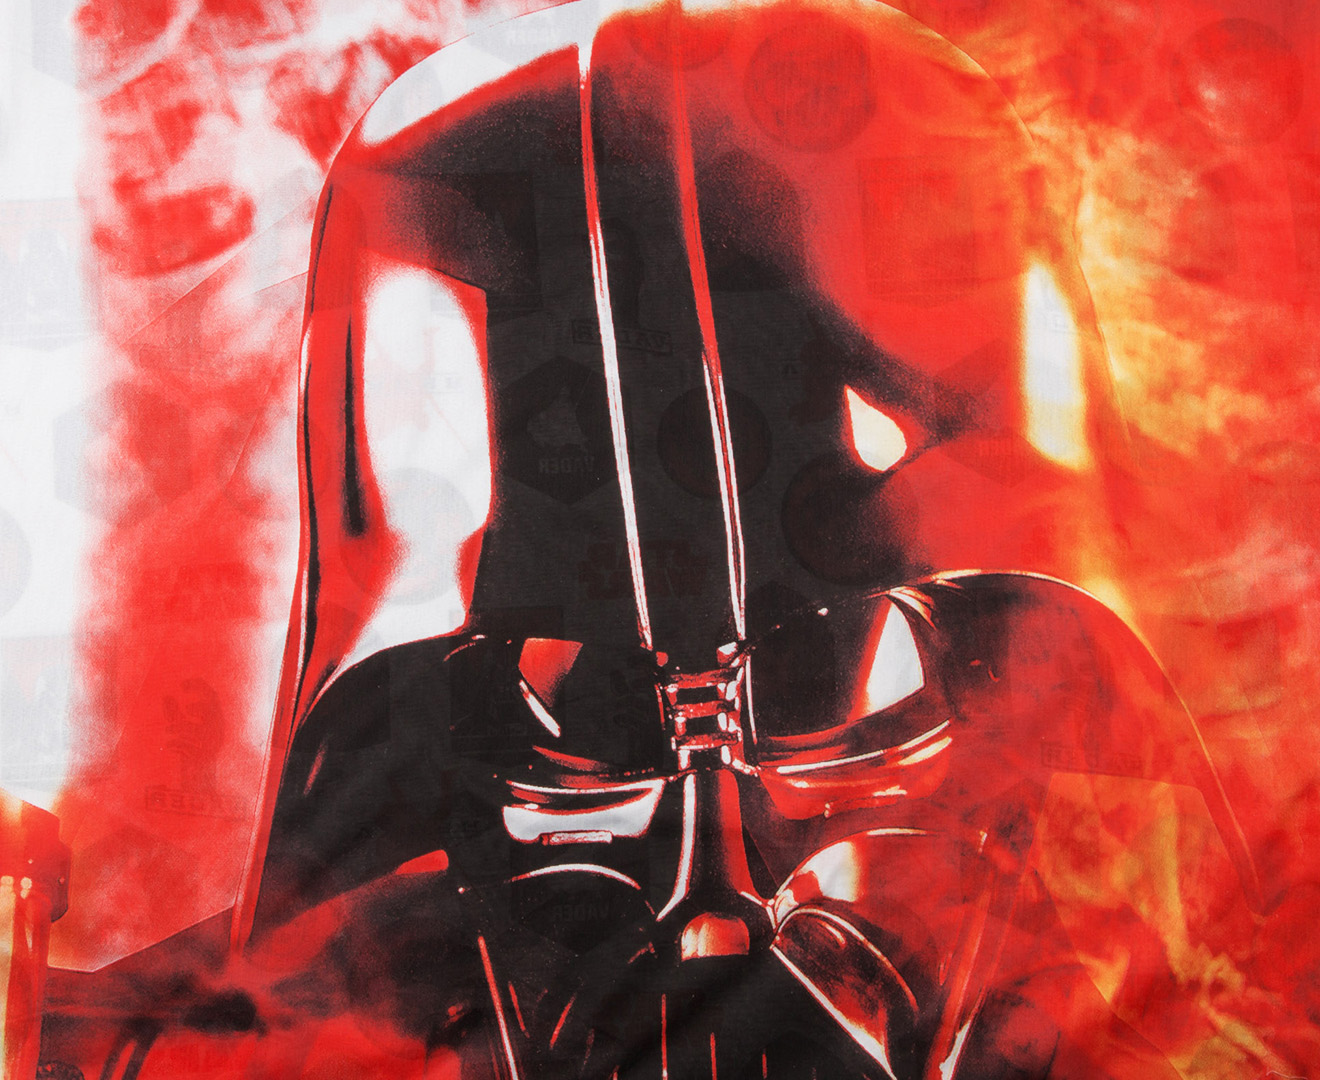 vader singles Singles (19xx)(vader) search the history of over 334 billion web pages on the internet.